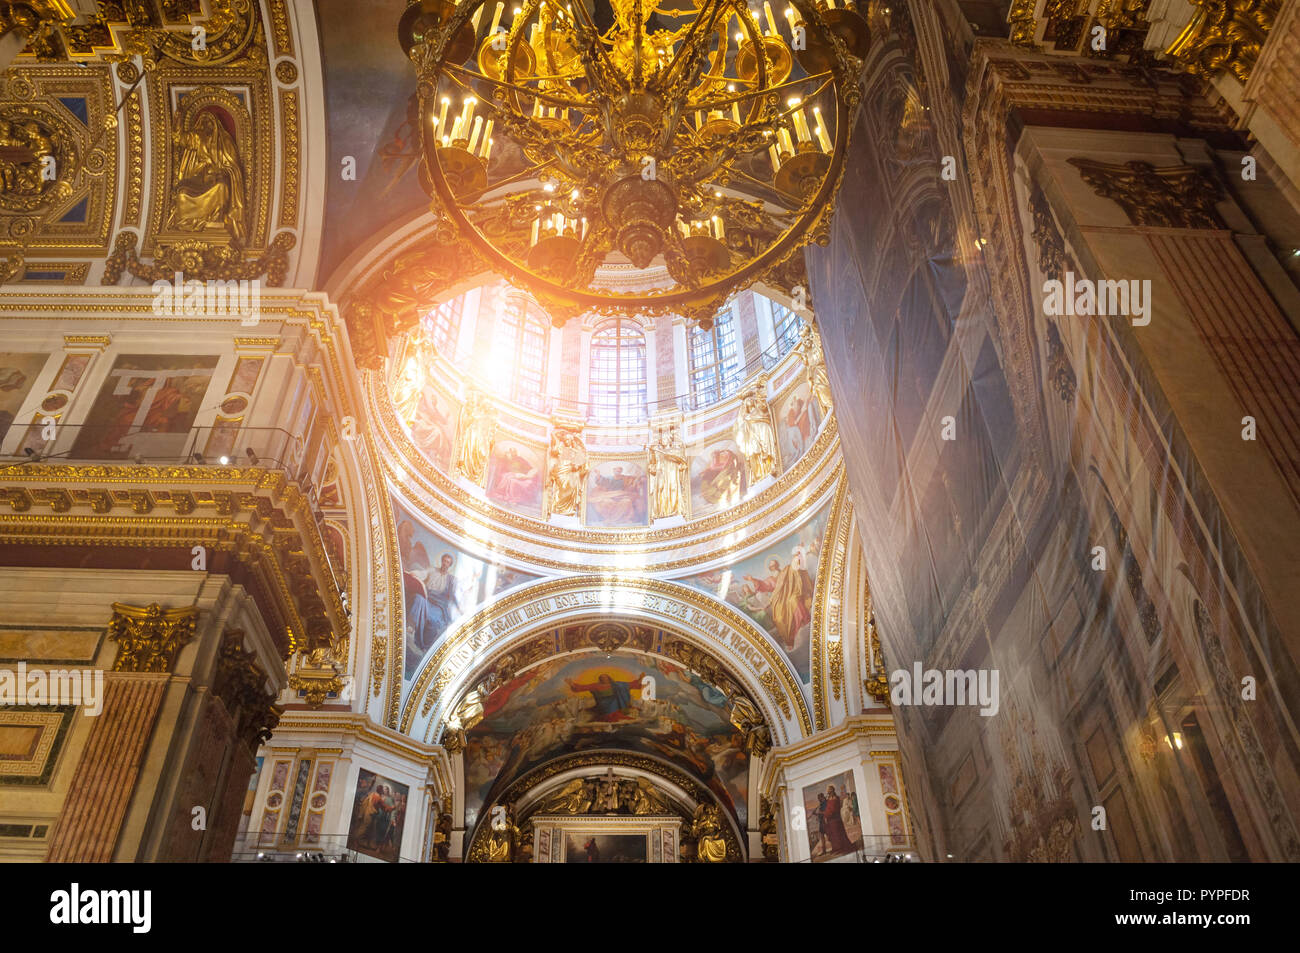 ST PETERSBURG, RUSSIA - AUGUST 15, 2017. Interior of the St Isaac Cathedral in St Petersburg, Russia - Stock Image